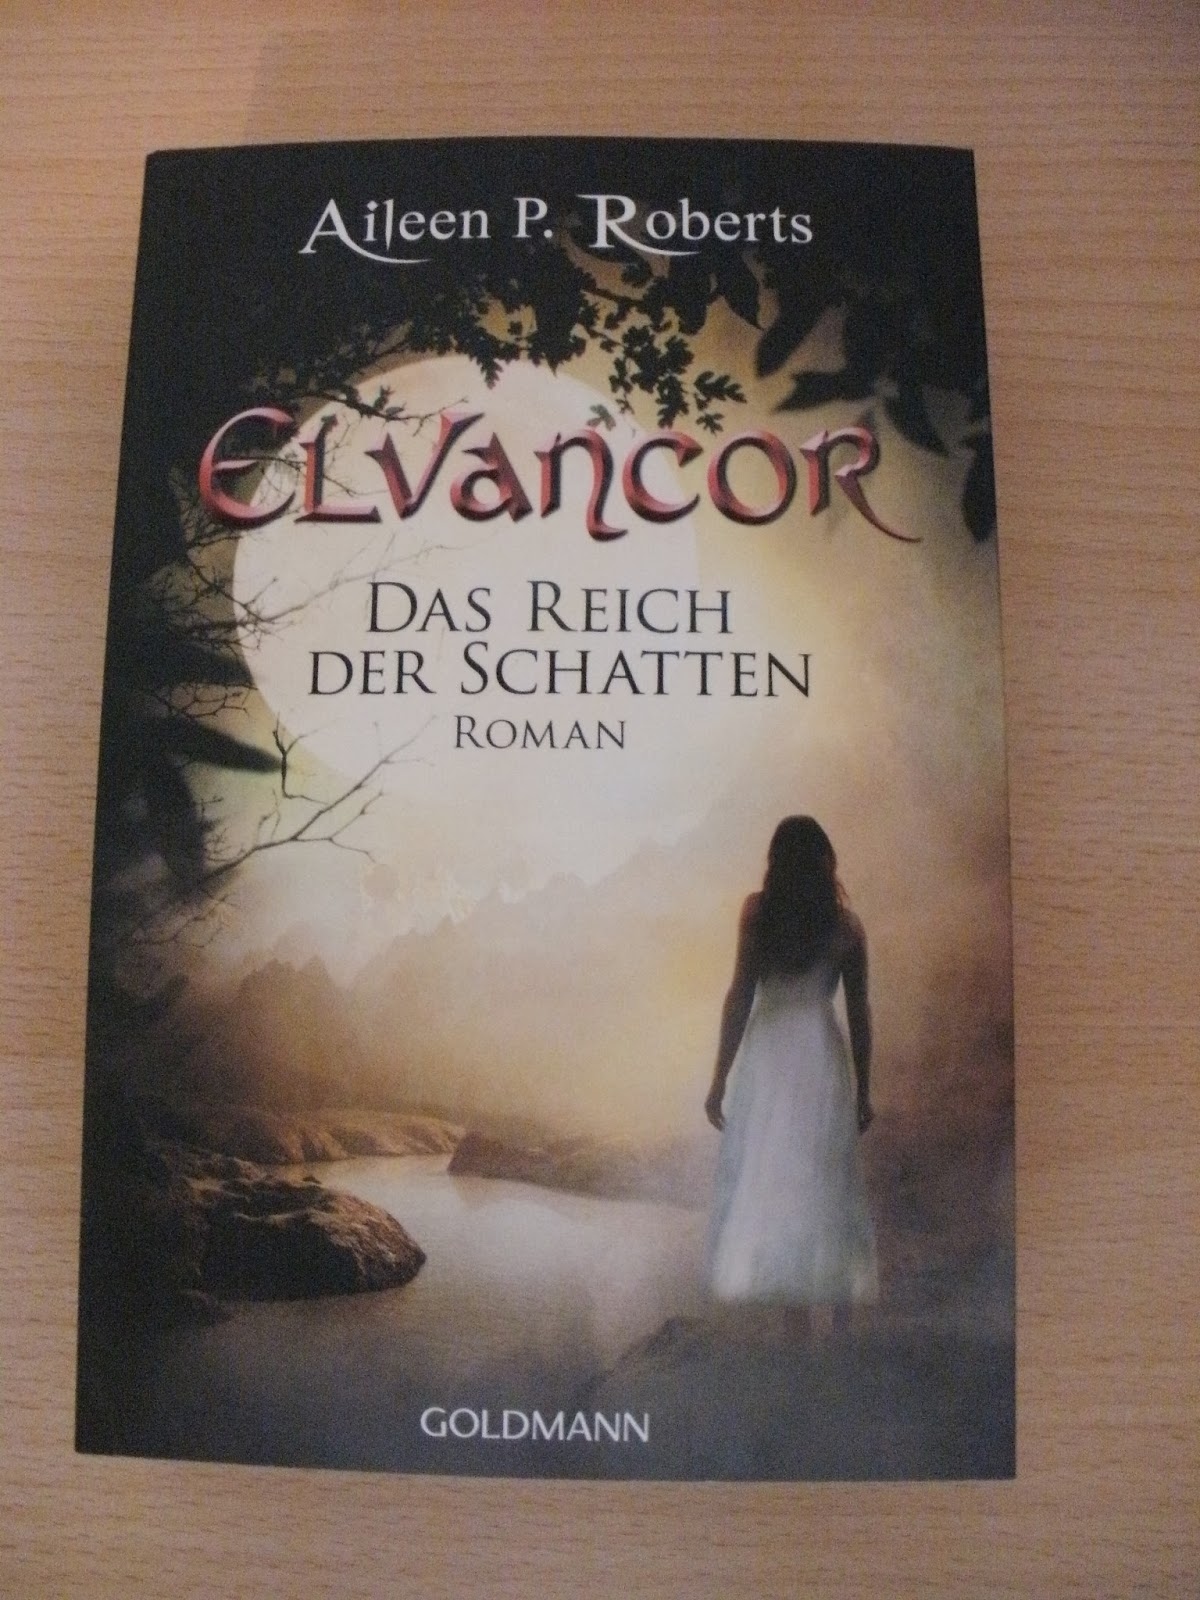 http://www.amazon.de/Das-Reich-Schatten-Elvancor-Roman-ebook/dp/B00E7PVO18/ref=sr_1_2?s=books&ie=UTF8&qid=1424039667&sr=1-2&keywords=elvancor